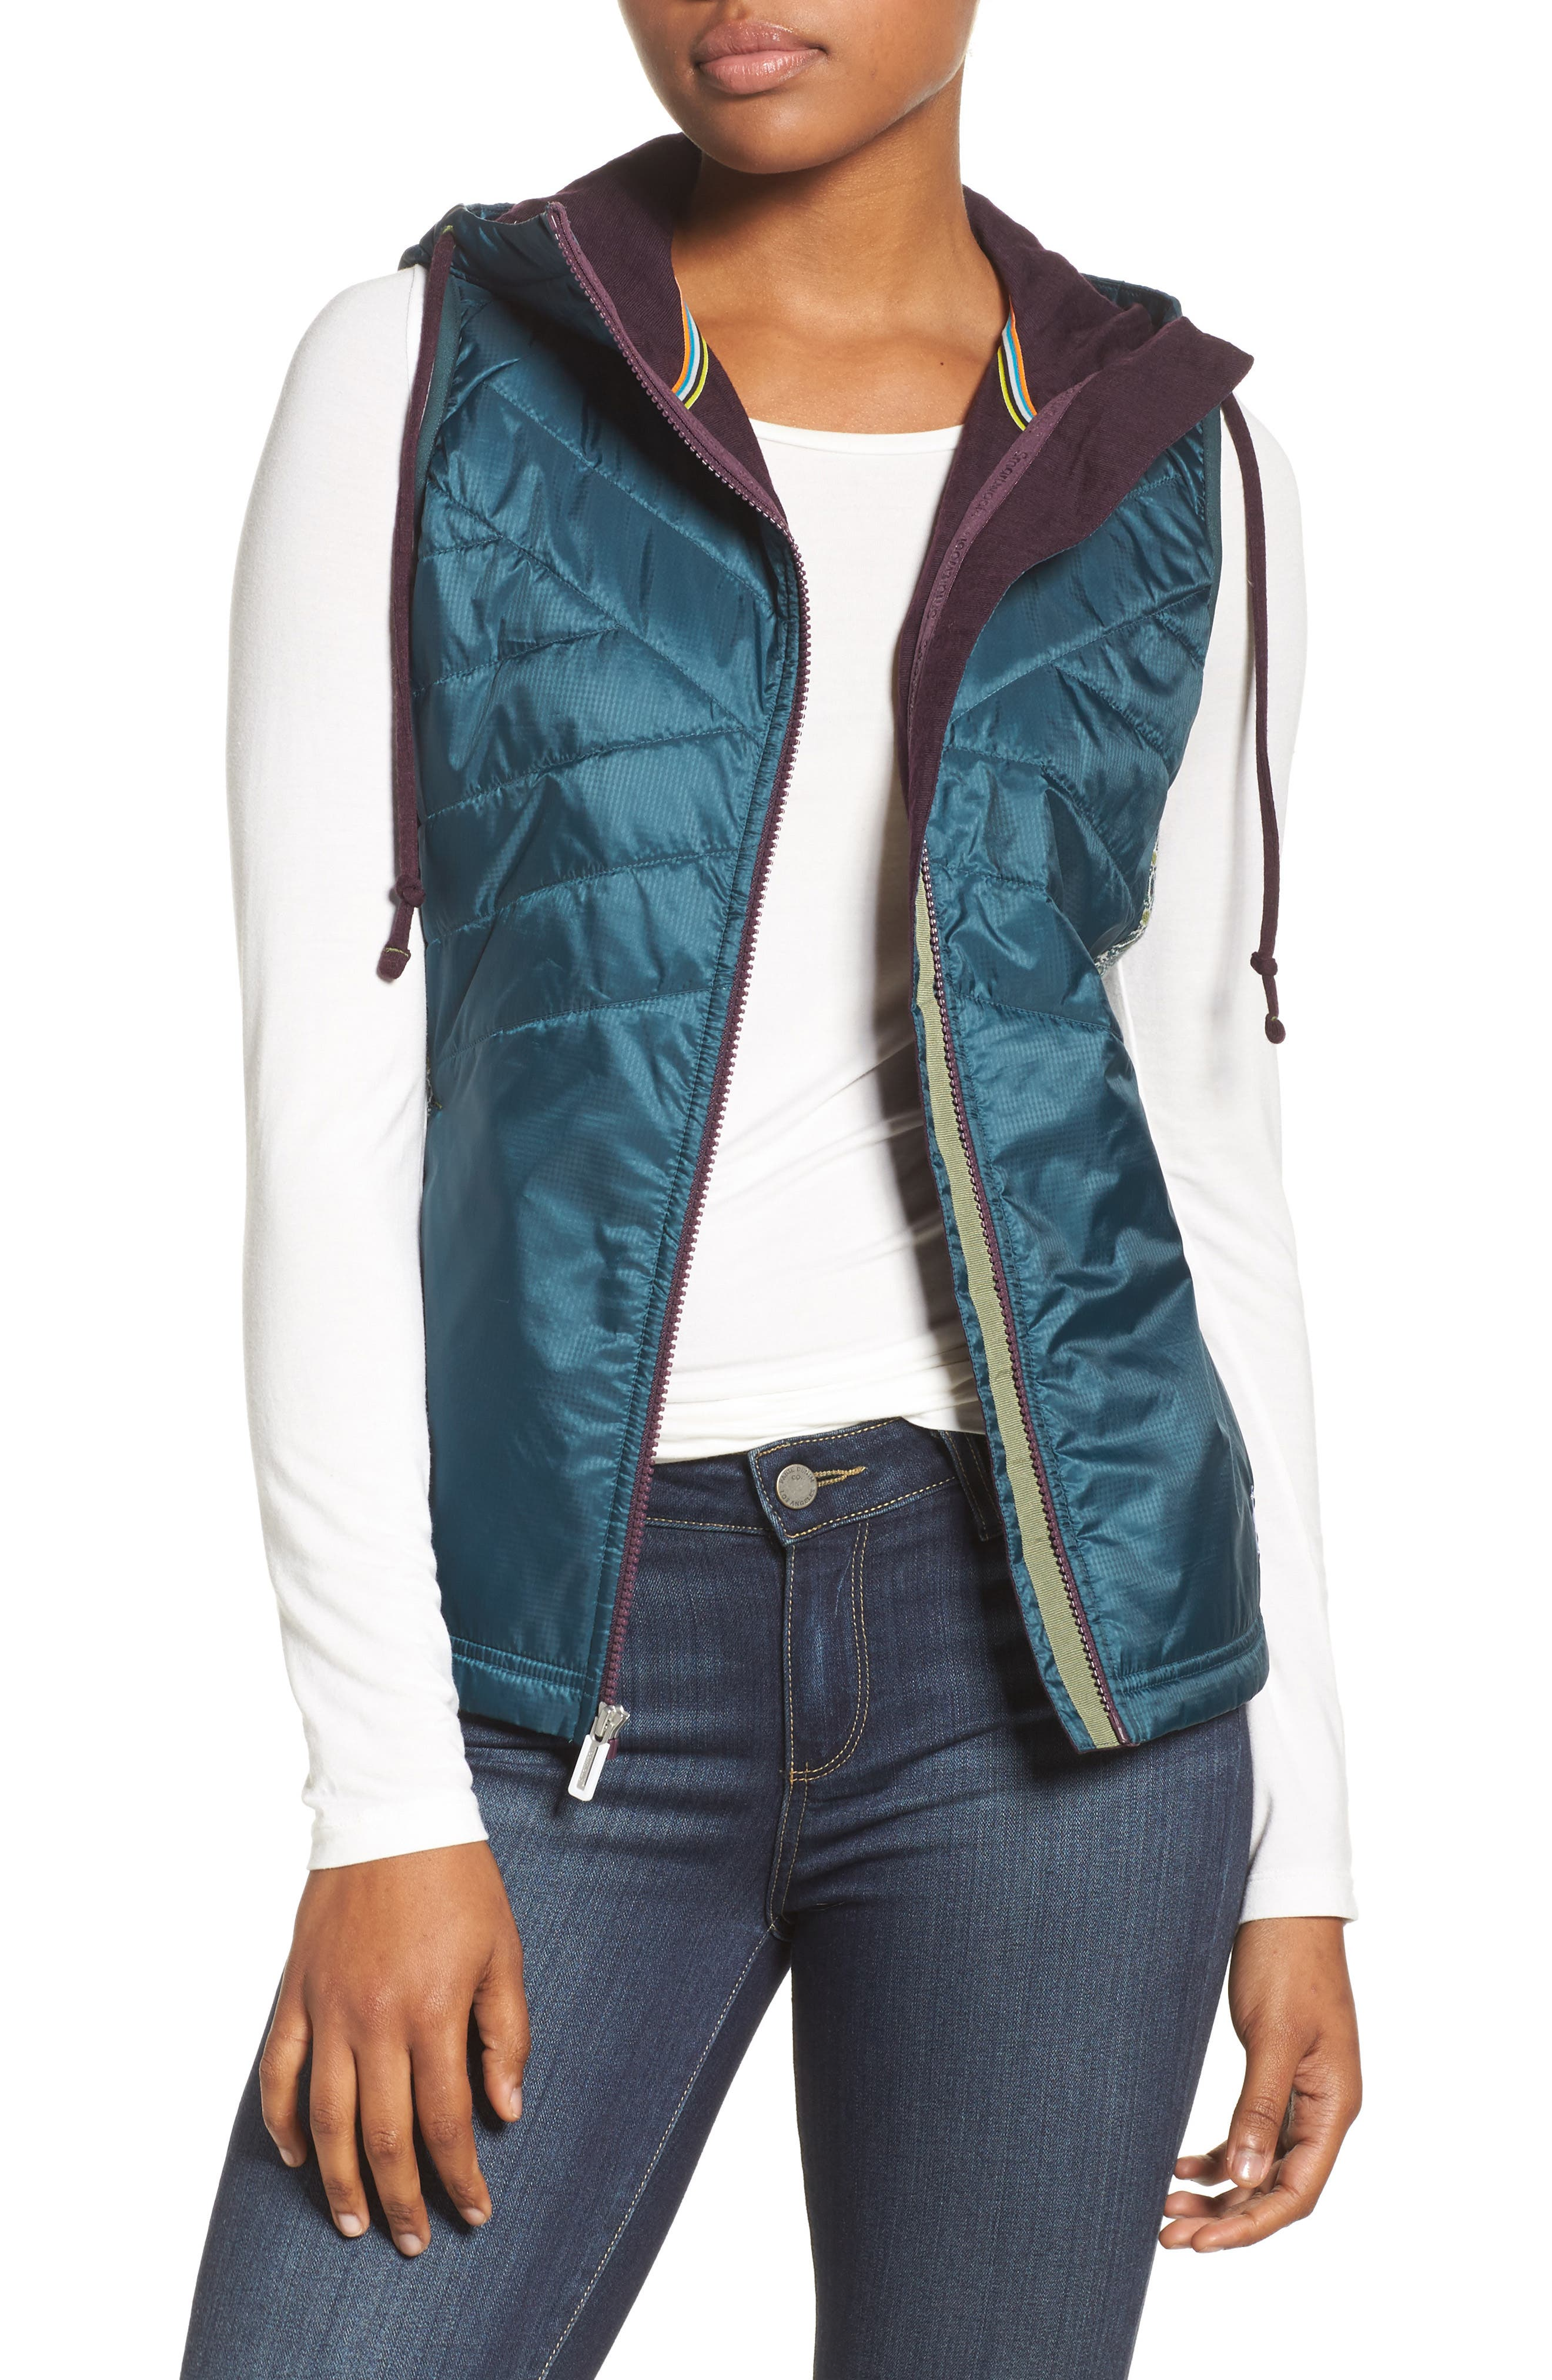 Smartwool Quilted Double Propulsion 60 Hooded Vest